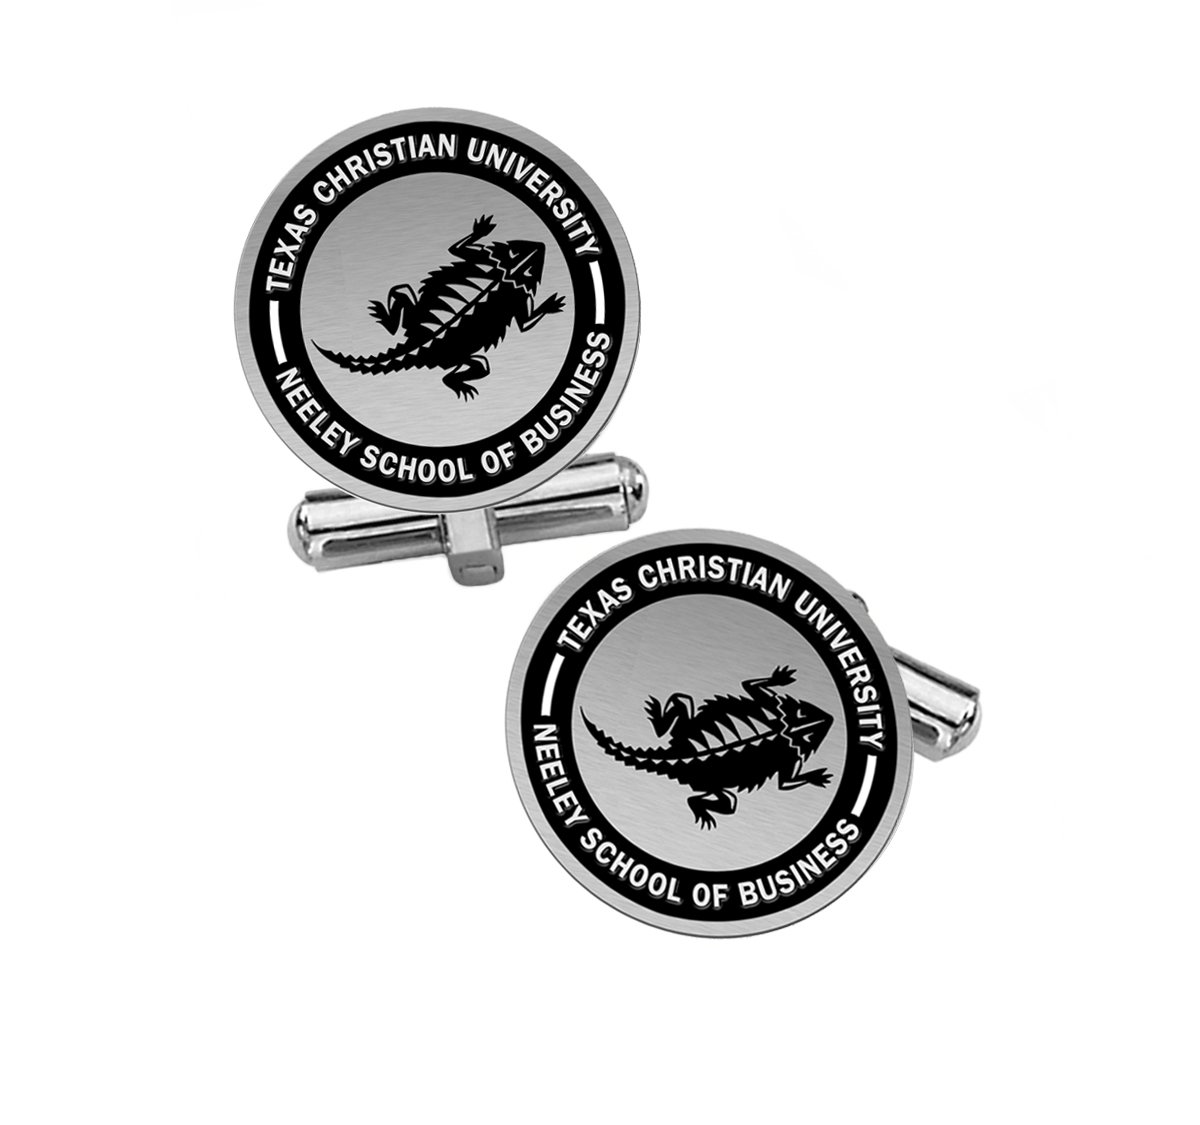 Neeley School of Business Cuff Links | Texas Christian University TCU by College Jewelry